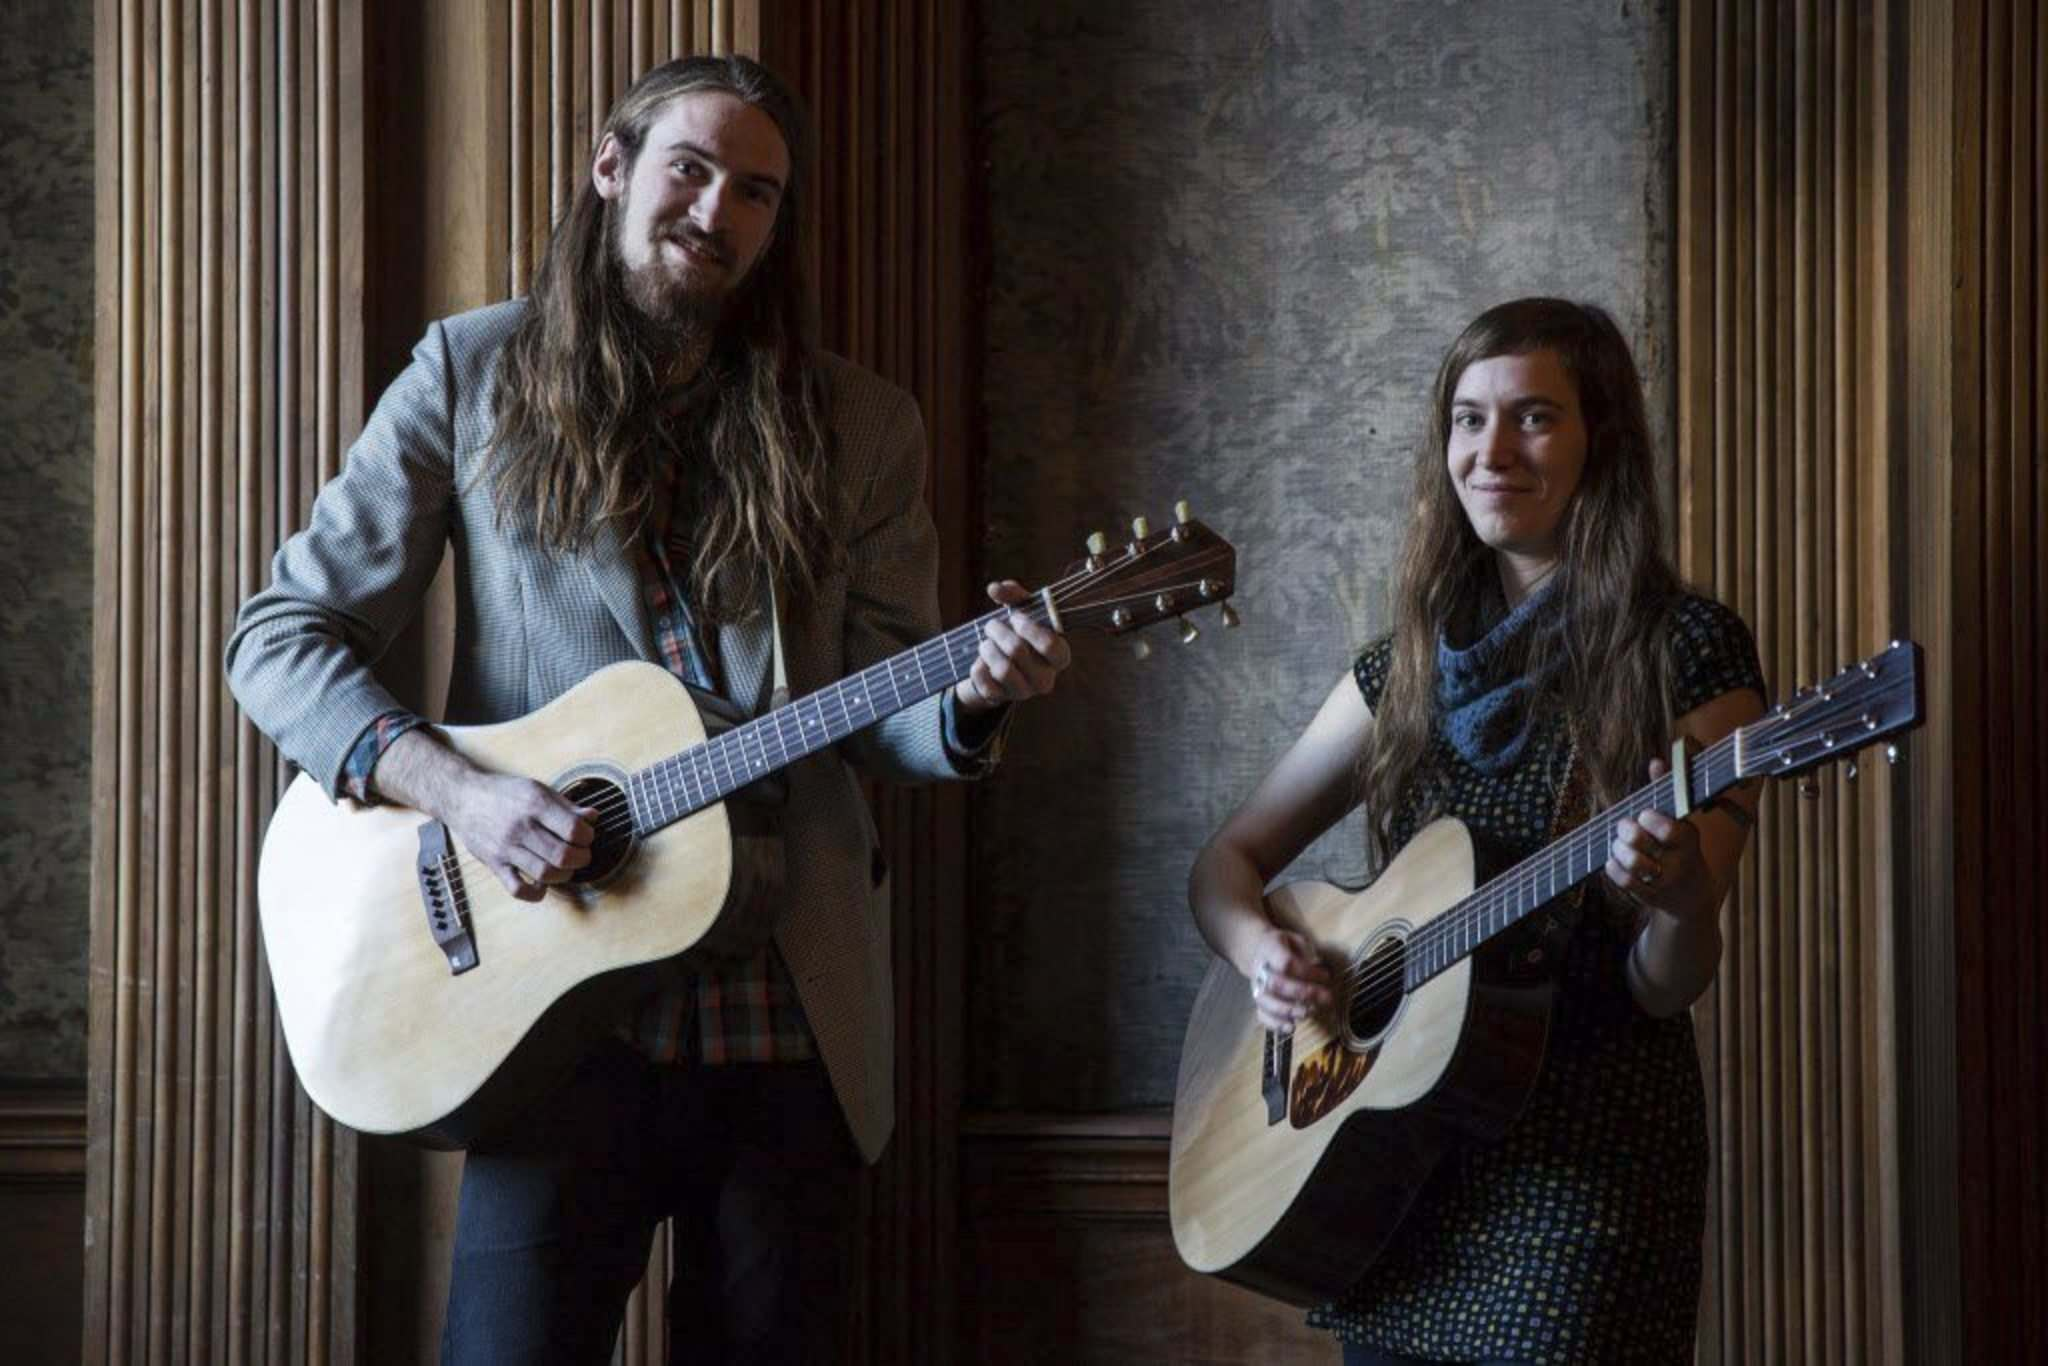 MIKE DEAL / WINNIPEG FREE PRESS FILE</p><p>Twins and bandmates Lucas and Madeleine Roger make up the folk group Roger Roger.</p></p>